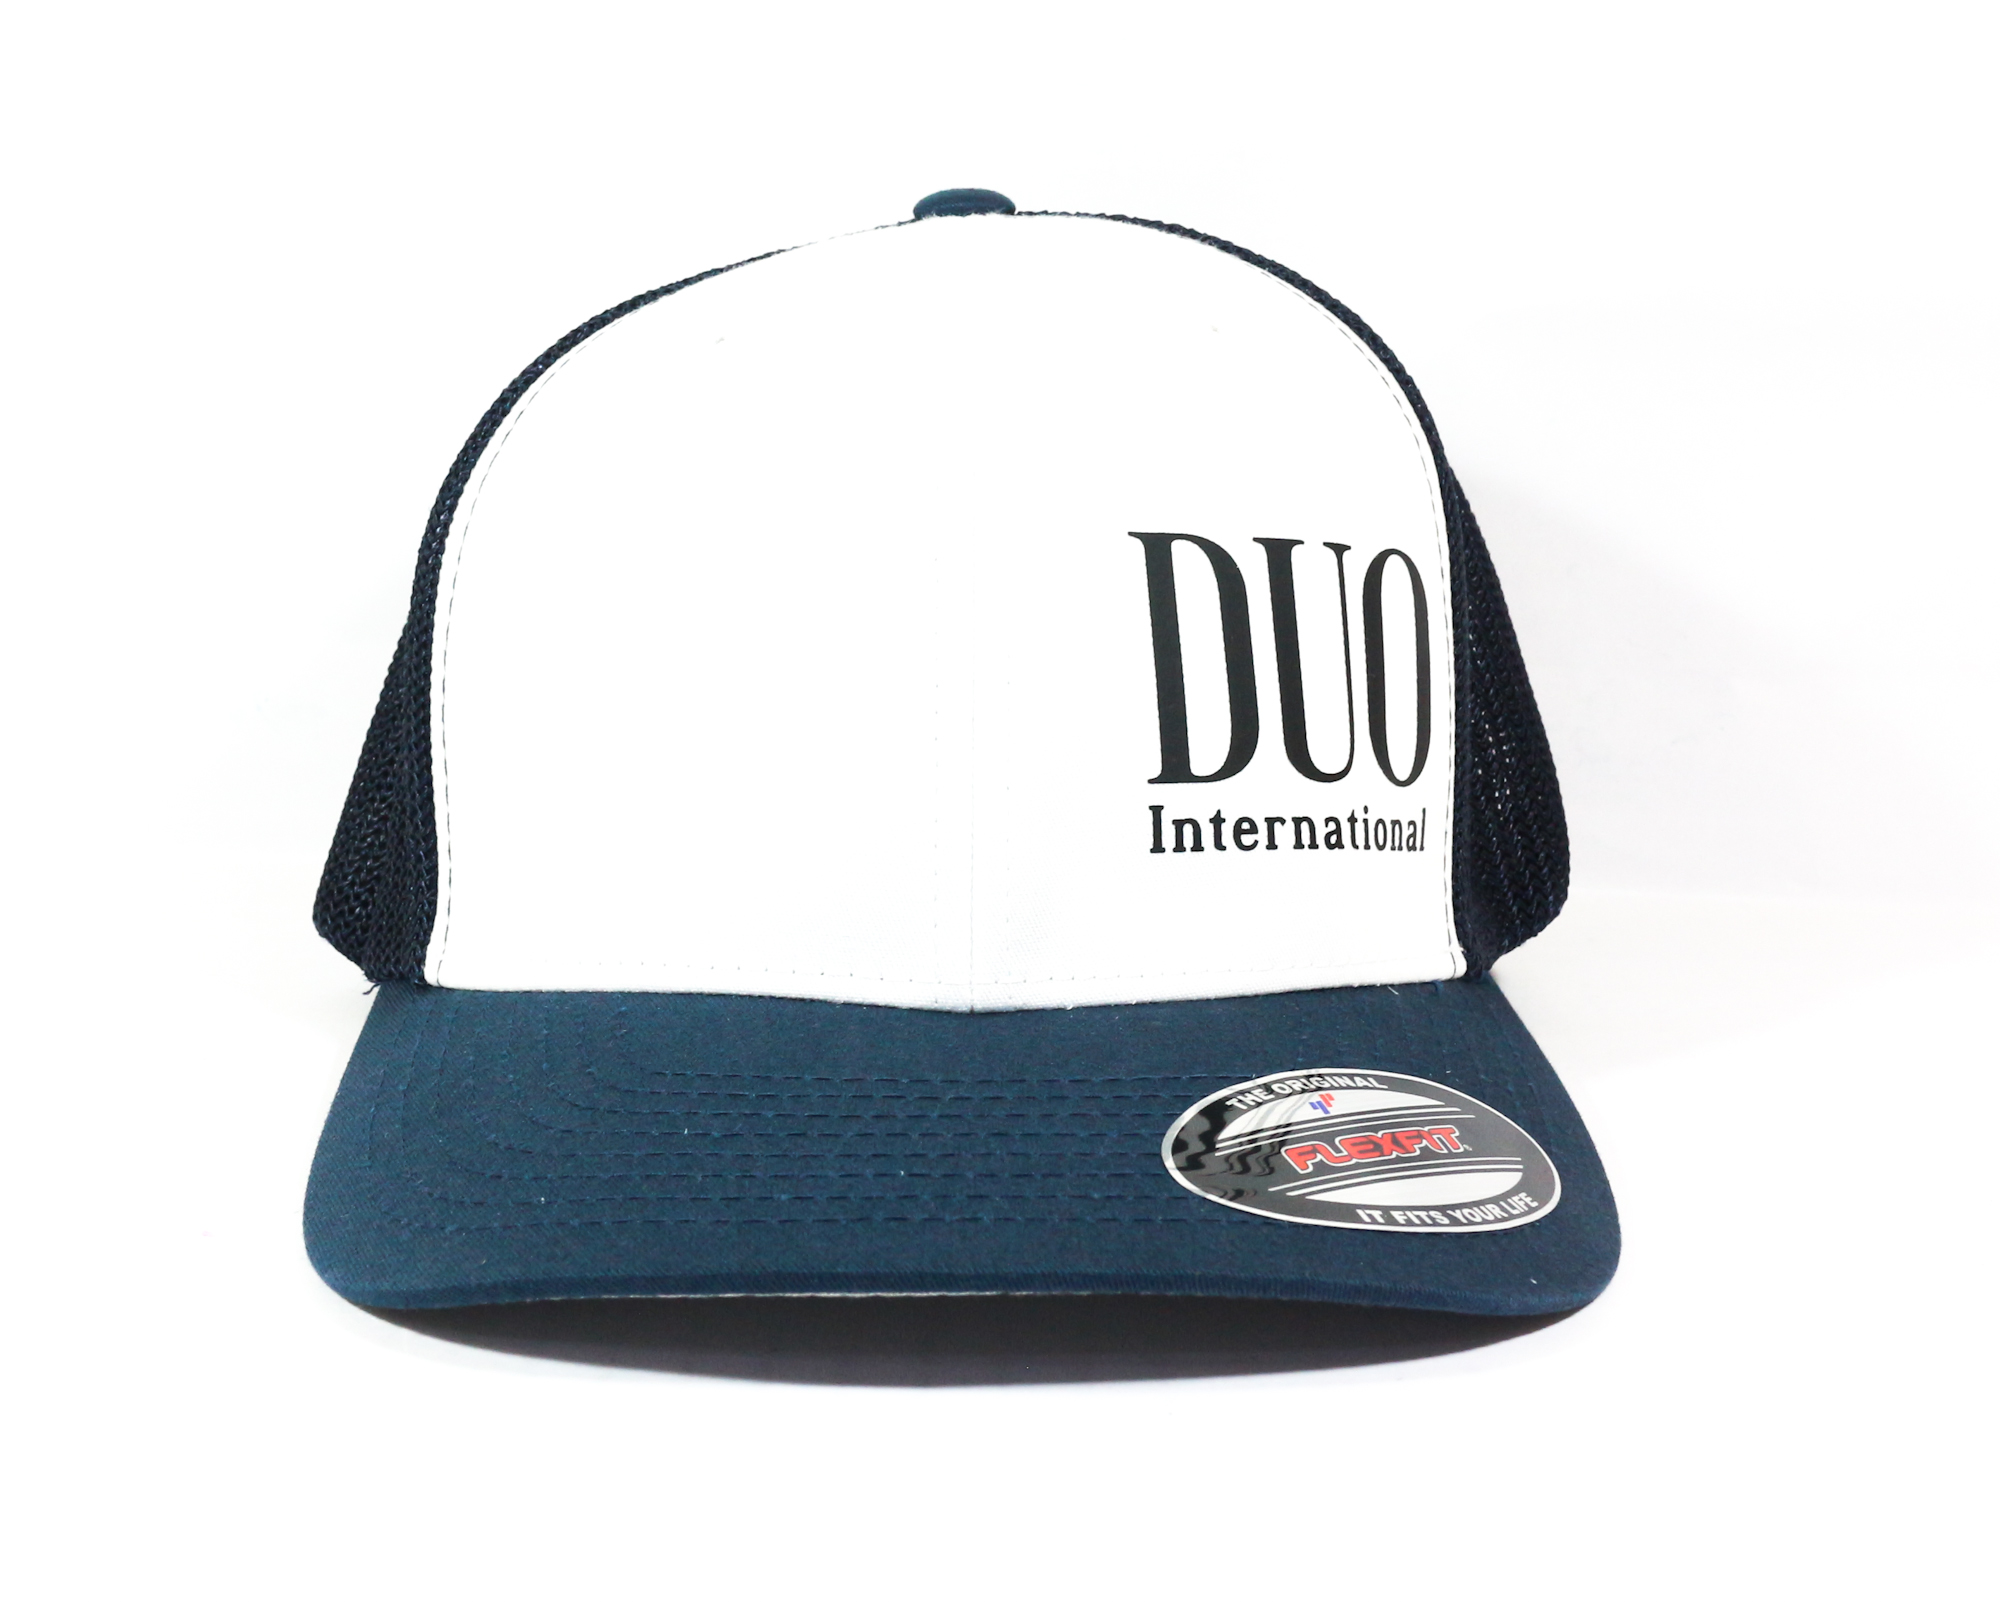 Duo Cap FF Cap Original Japan Free Size Navy White (6973)